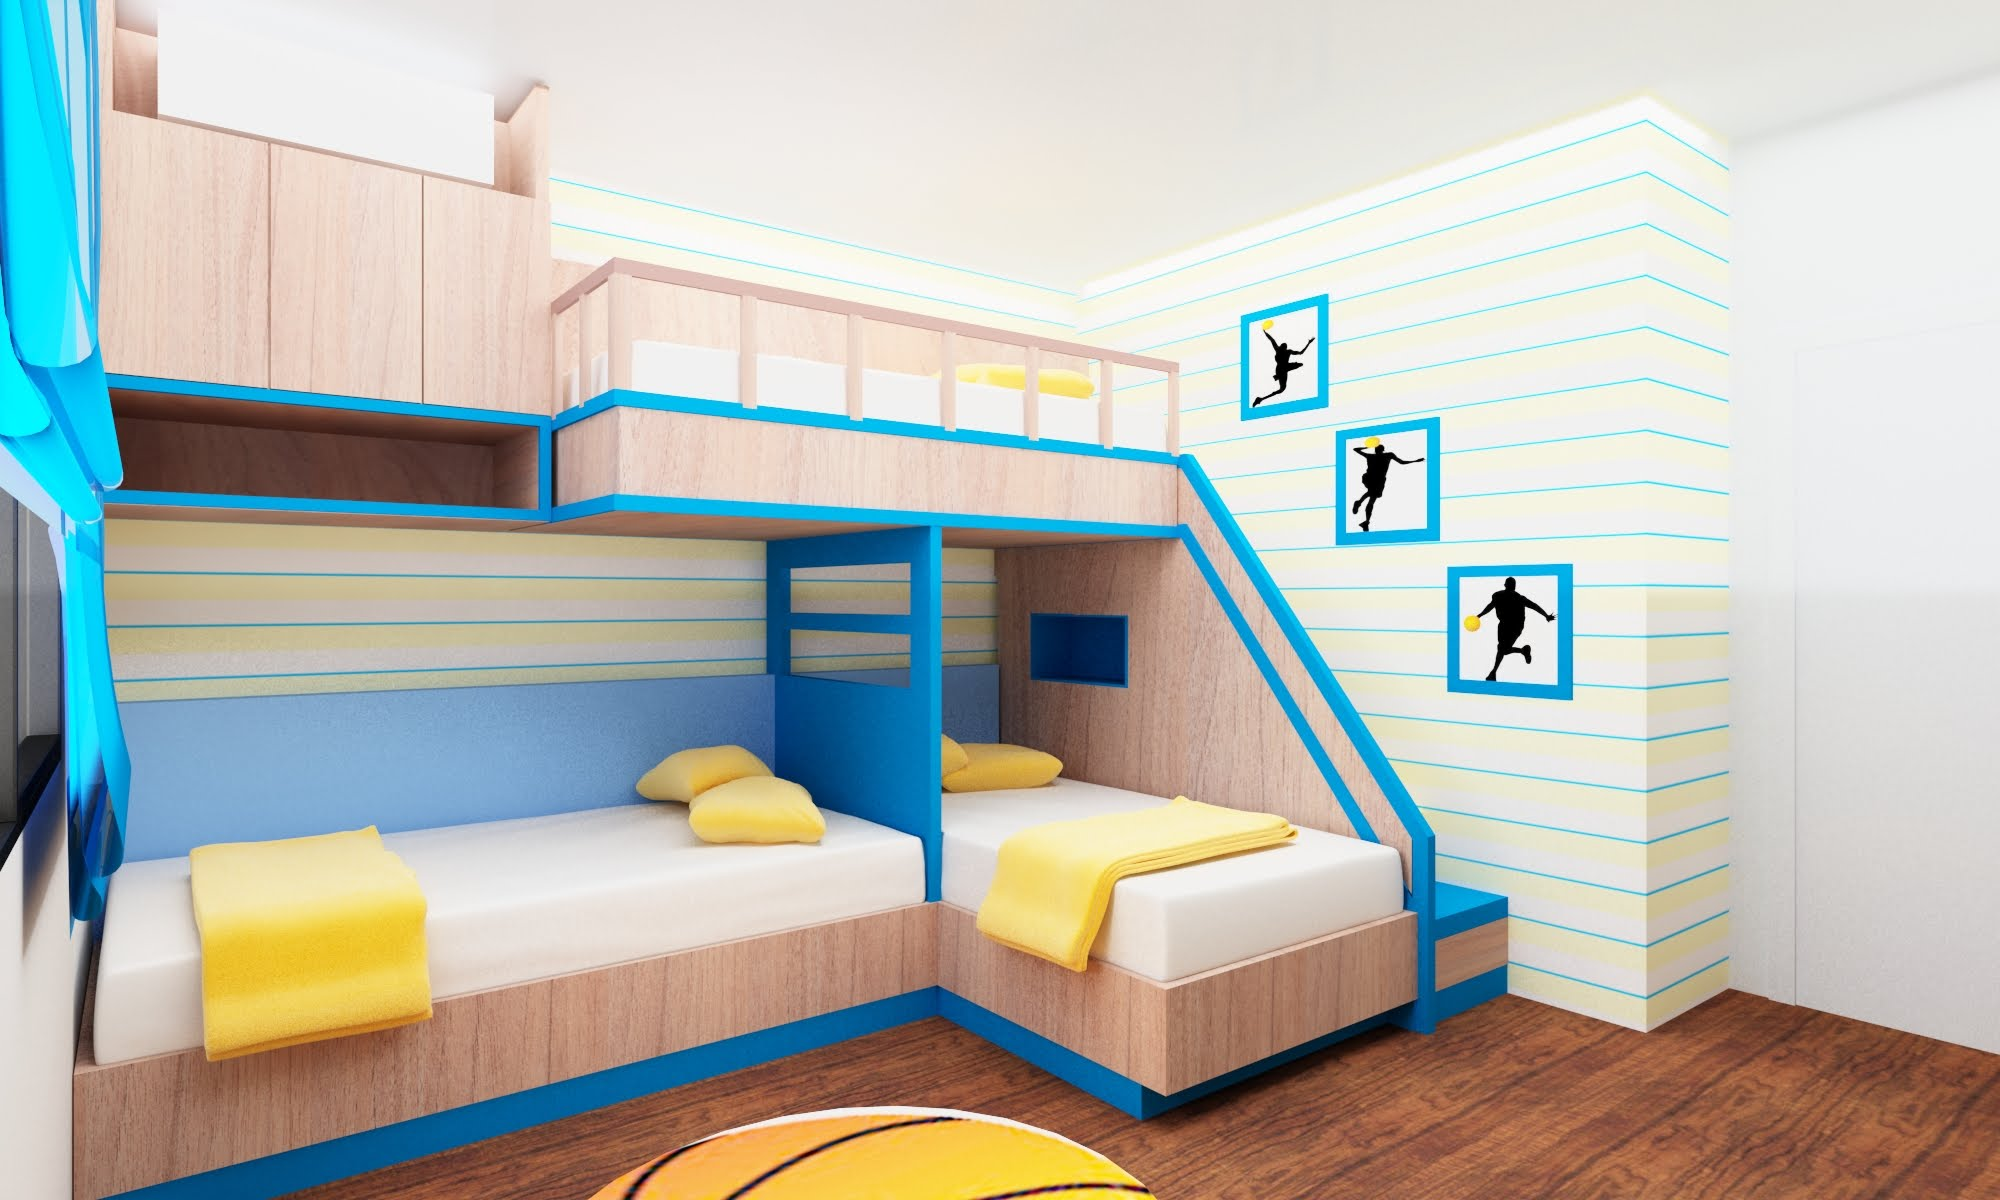 childrens bunk beds children bunk beds | toddler bunk bed dimensions - youtube WFYLLED